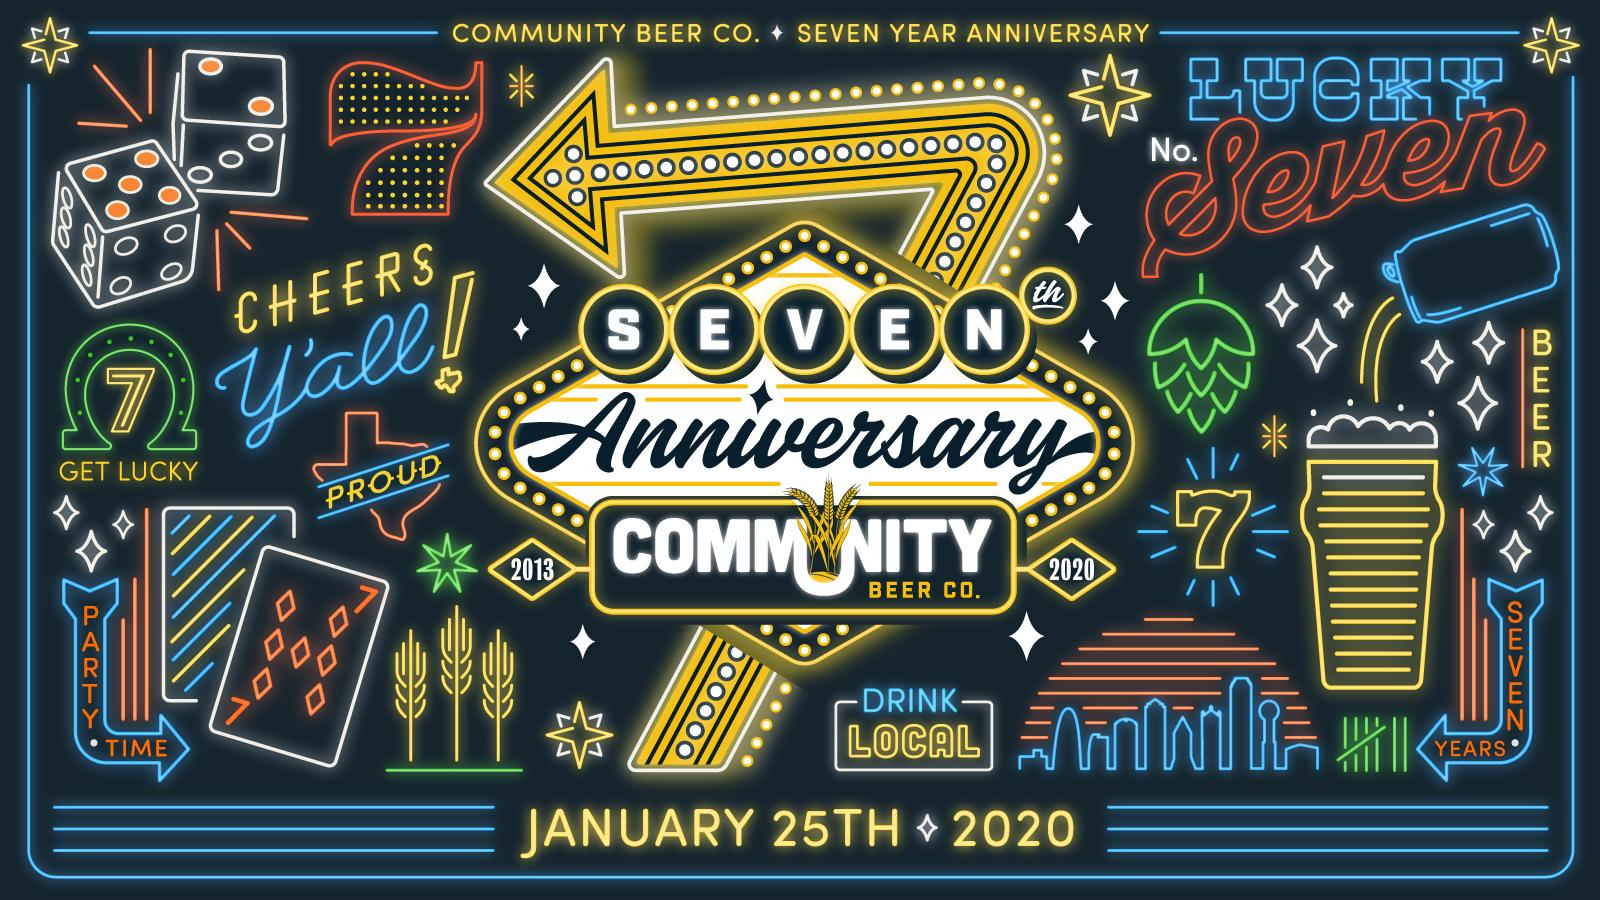 Community Beer Company 7 Year Anniversary @ Community Beer Company